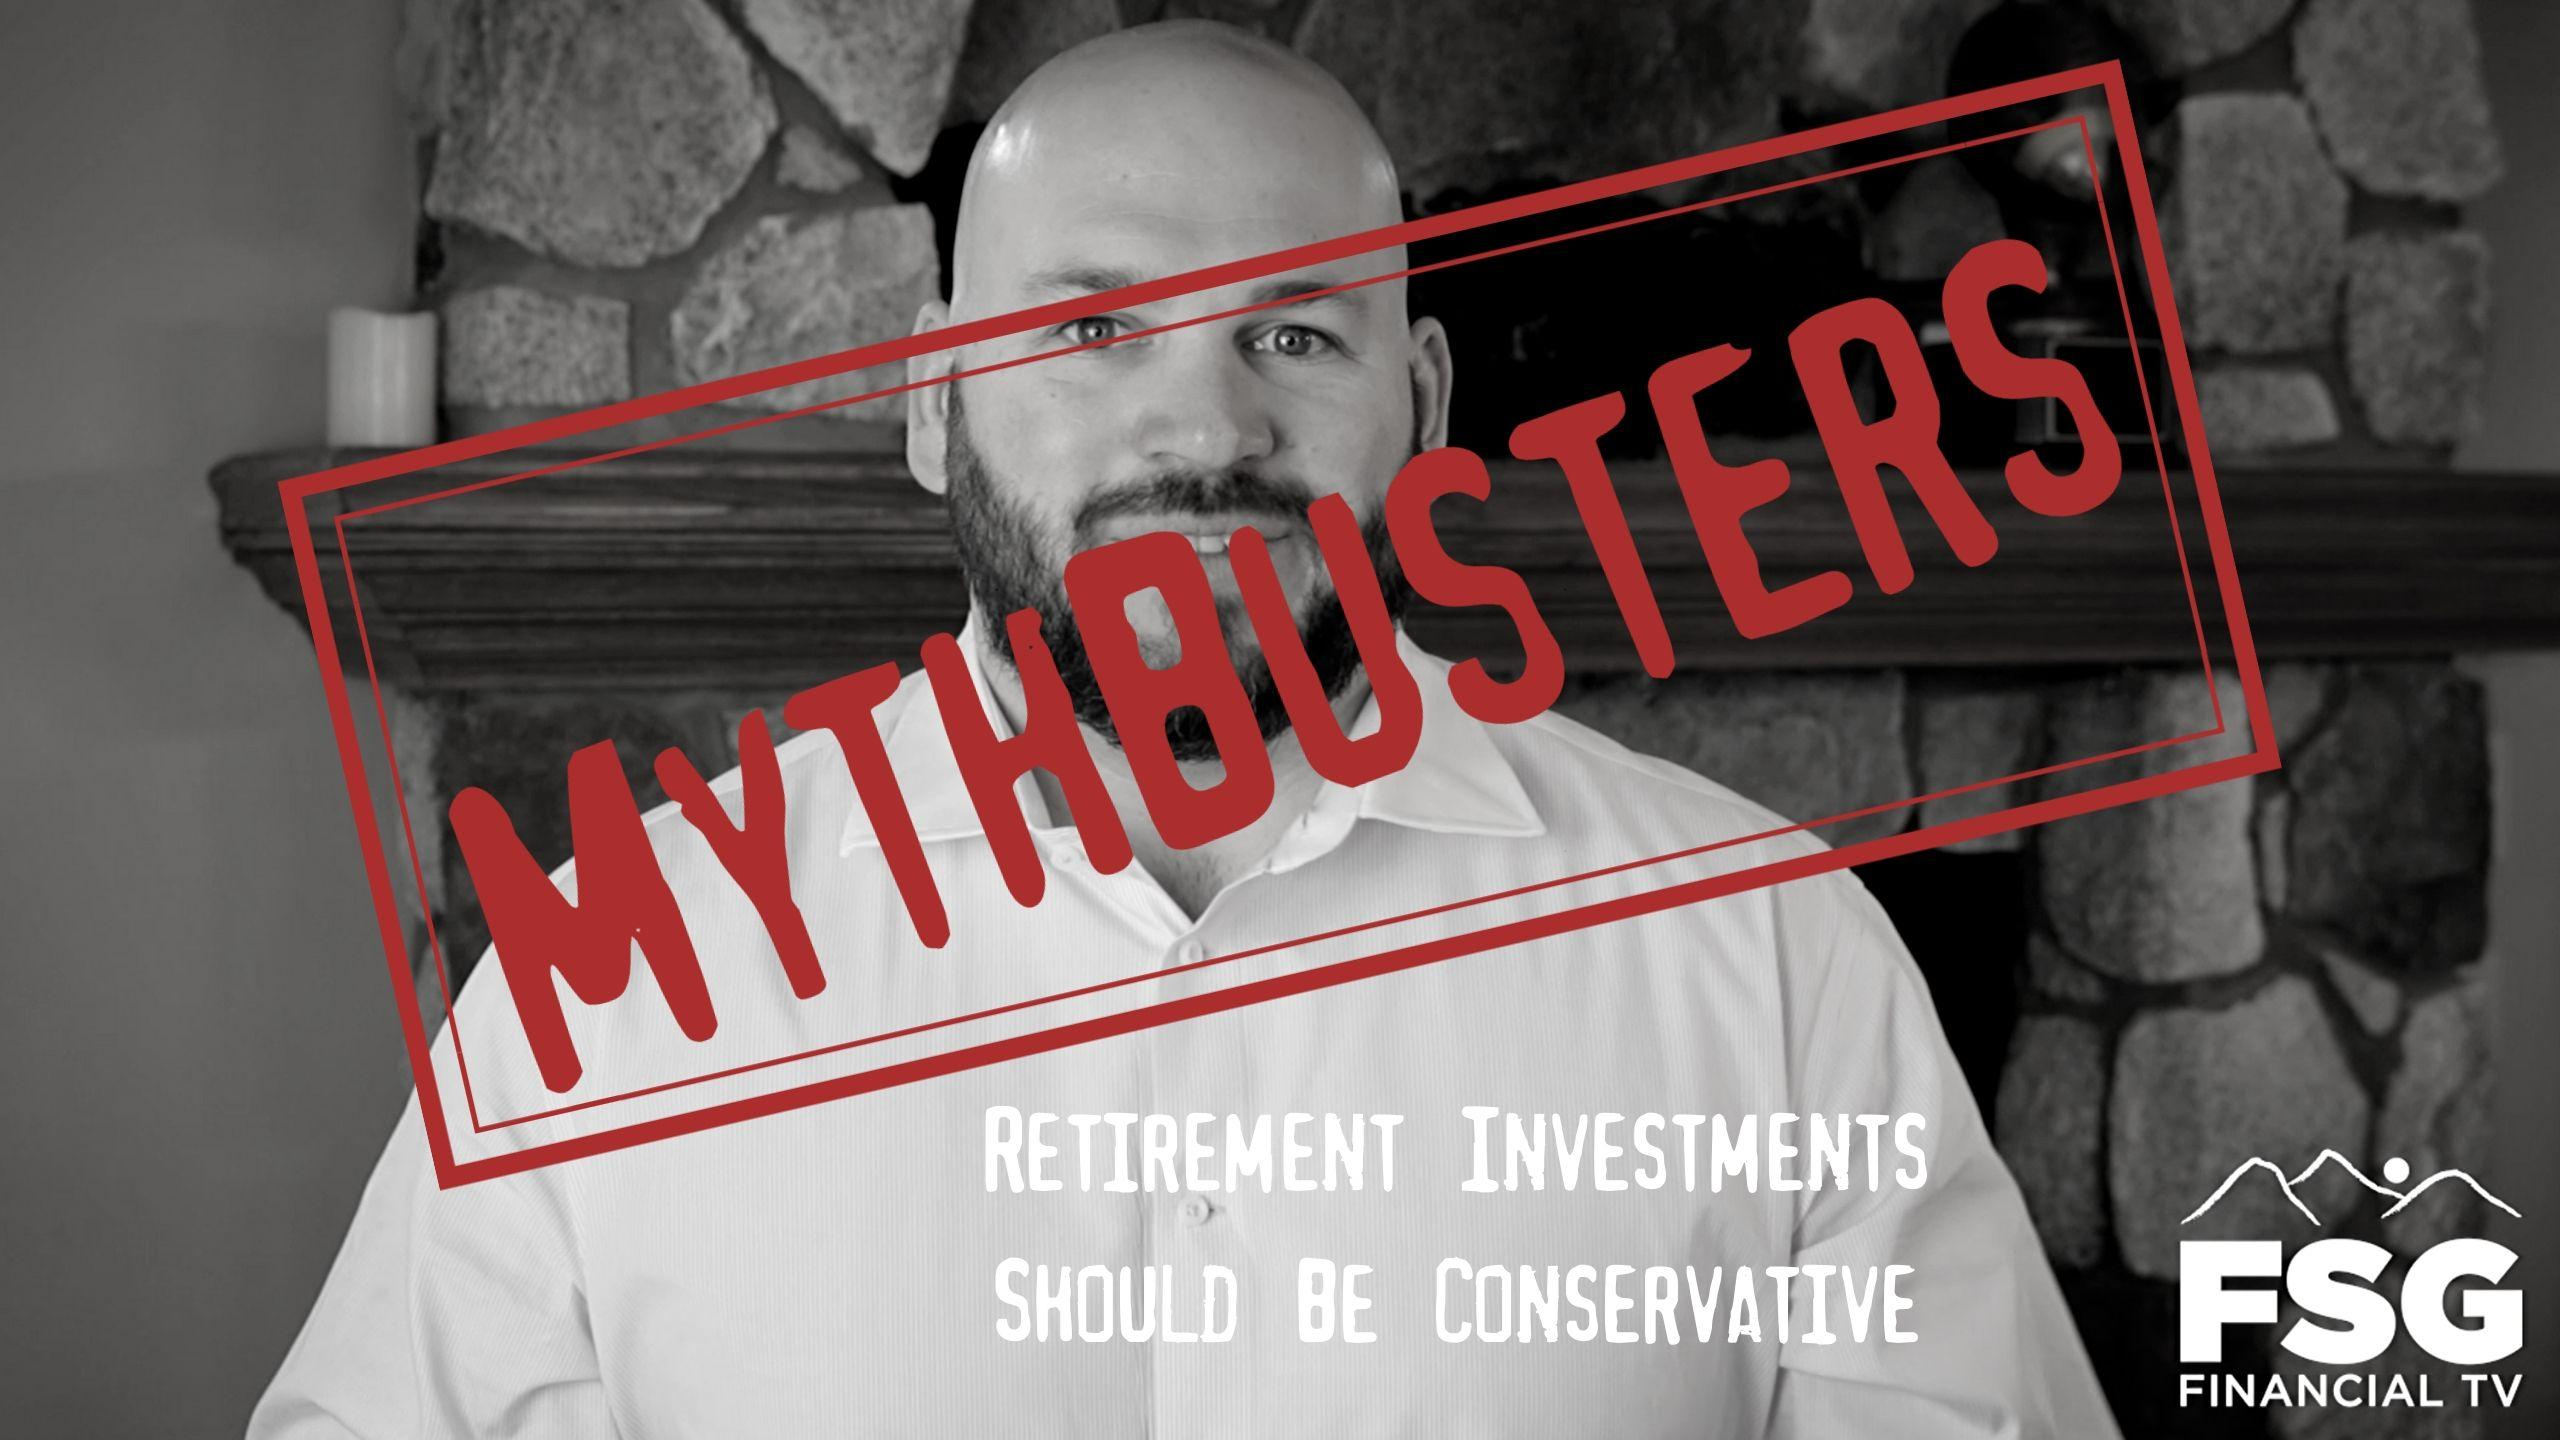 MythBusters: Retirement Investments Should be Conservative Thumbnail